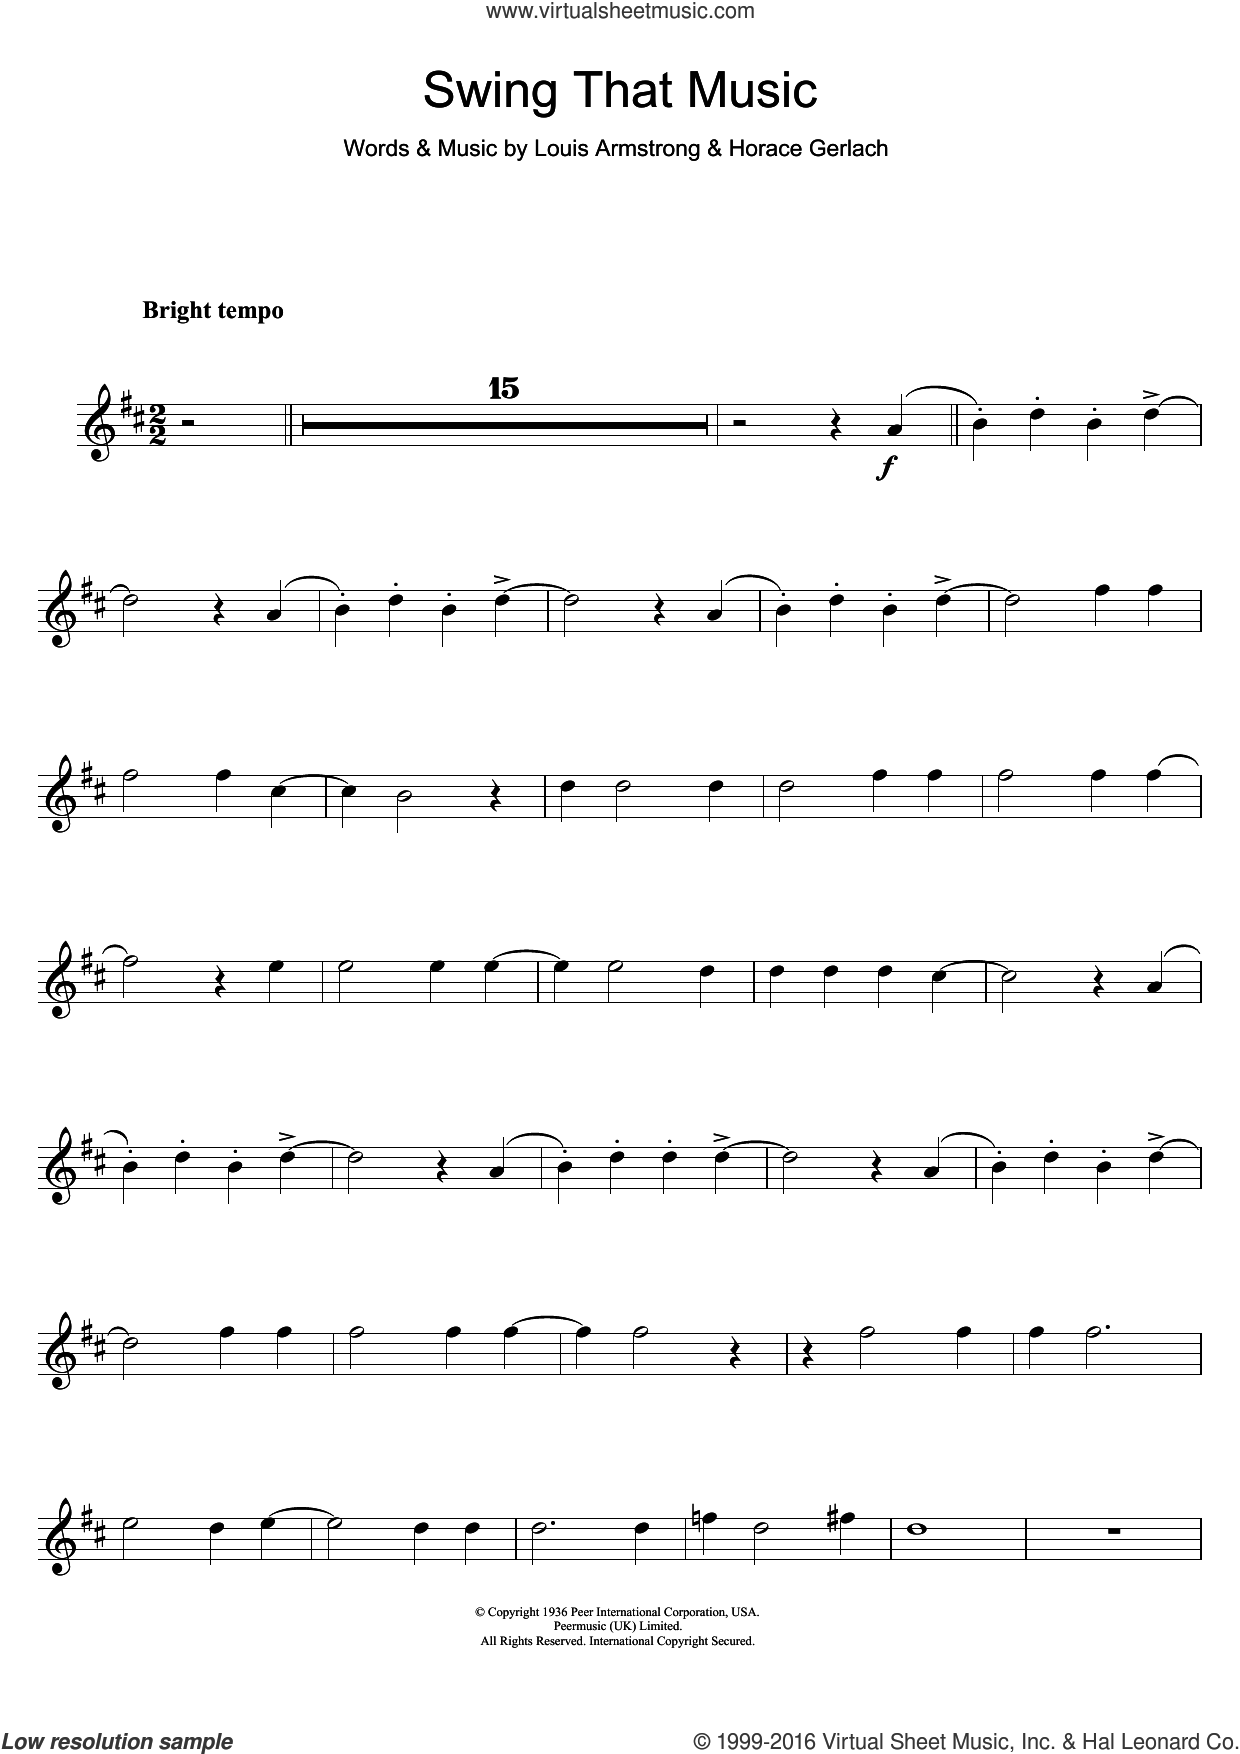 Swing That Music sheet music for clarinet solo by Louis Armstrong and Horace Gerlach, intermediate skill level